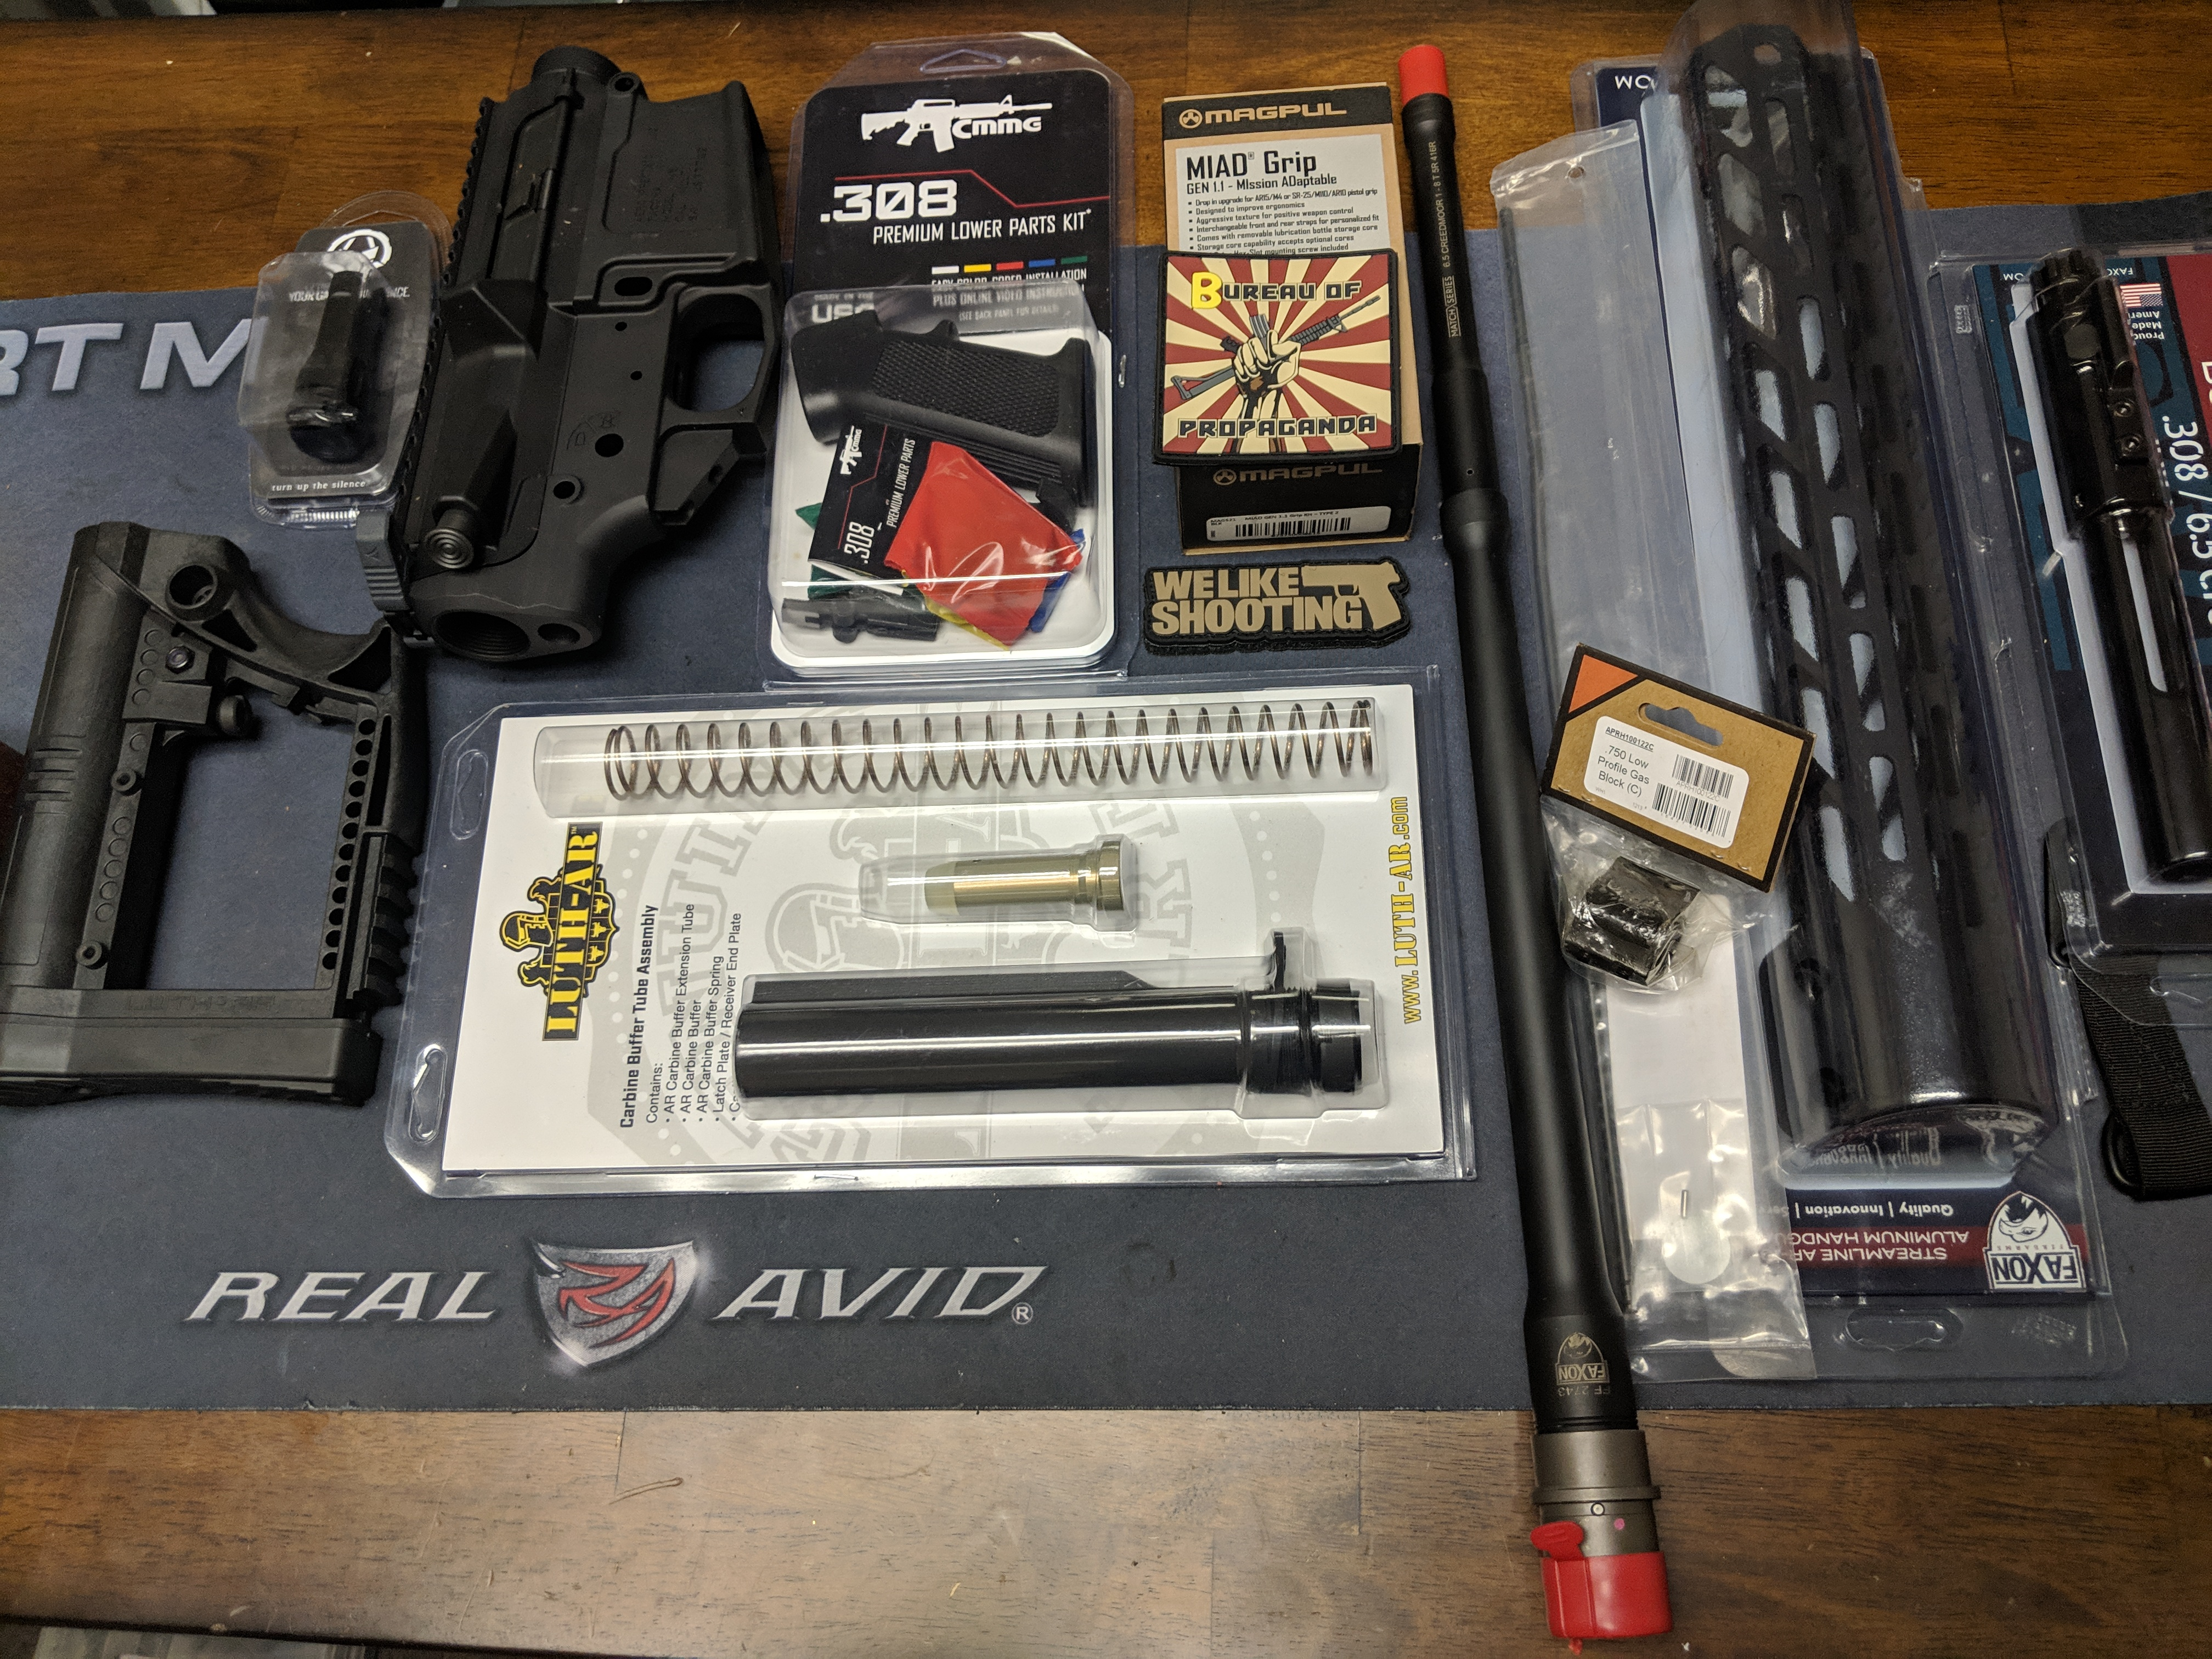 Parts list for your 6 5 Creedmoor - Shawn's Assem-Build - We